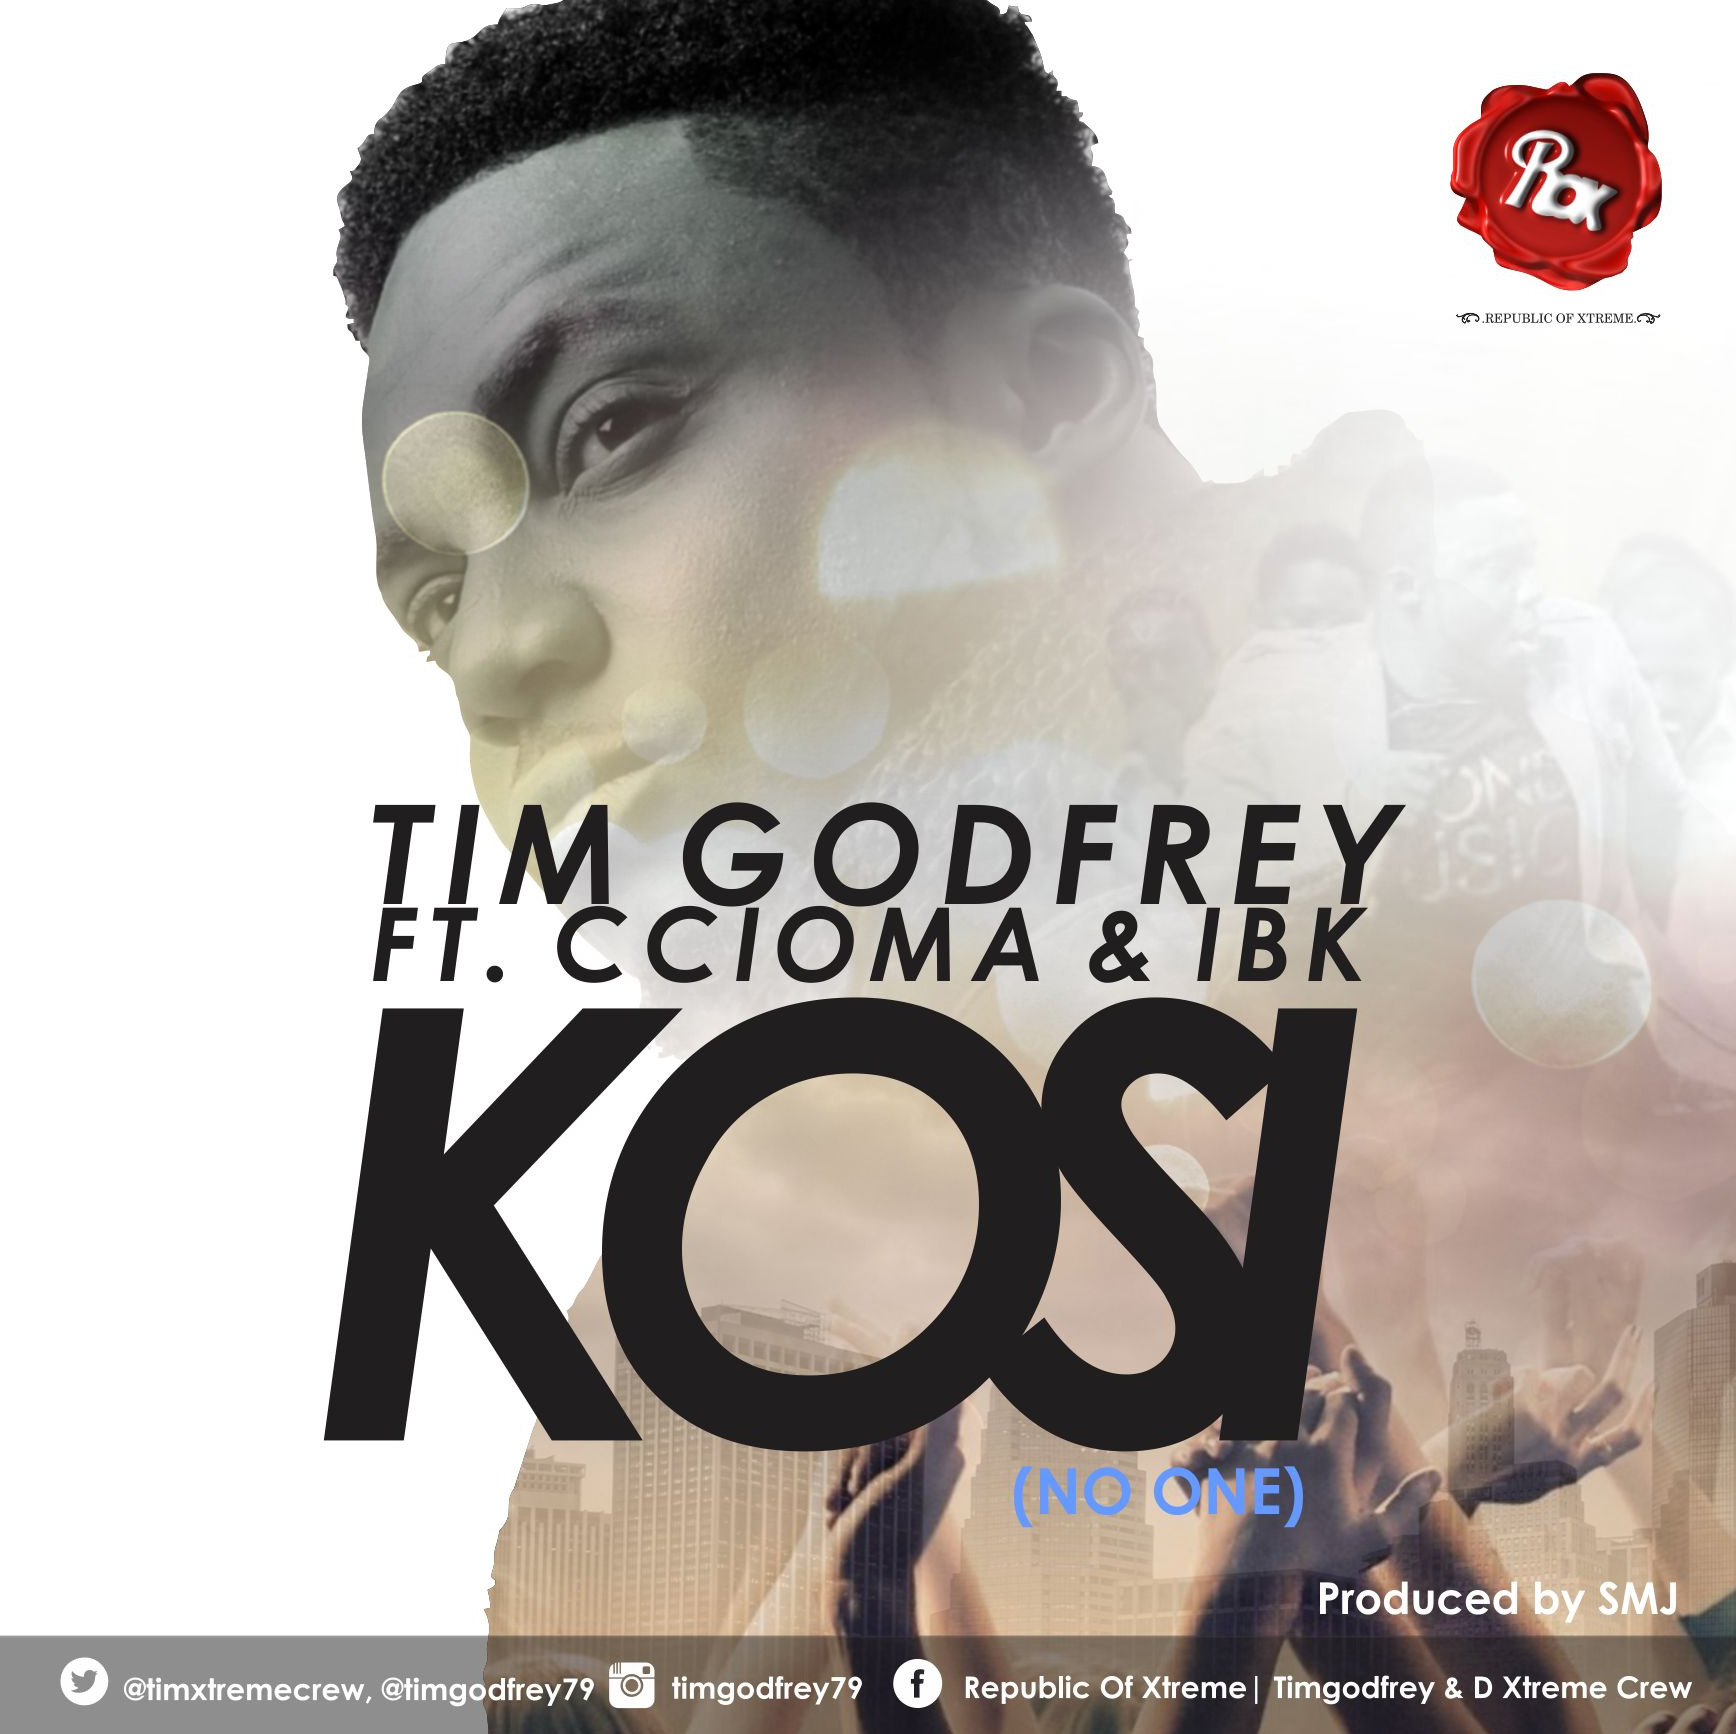 Tom Godfrey - Kosi -ART